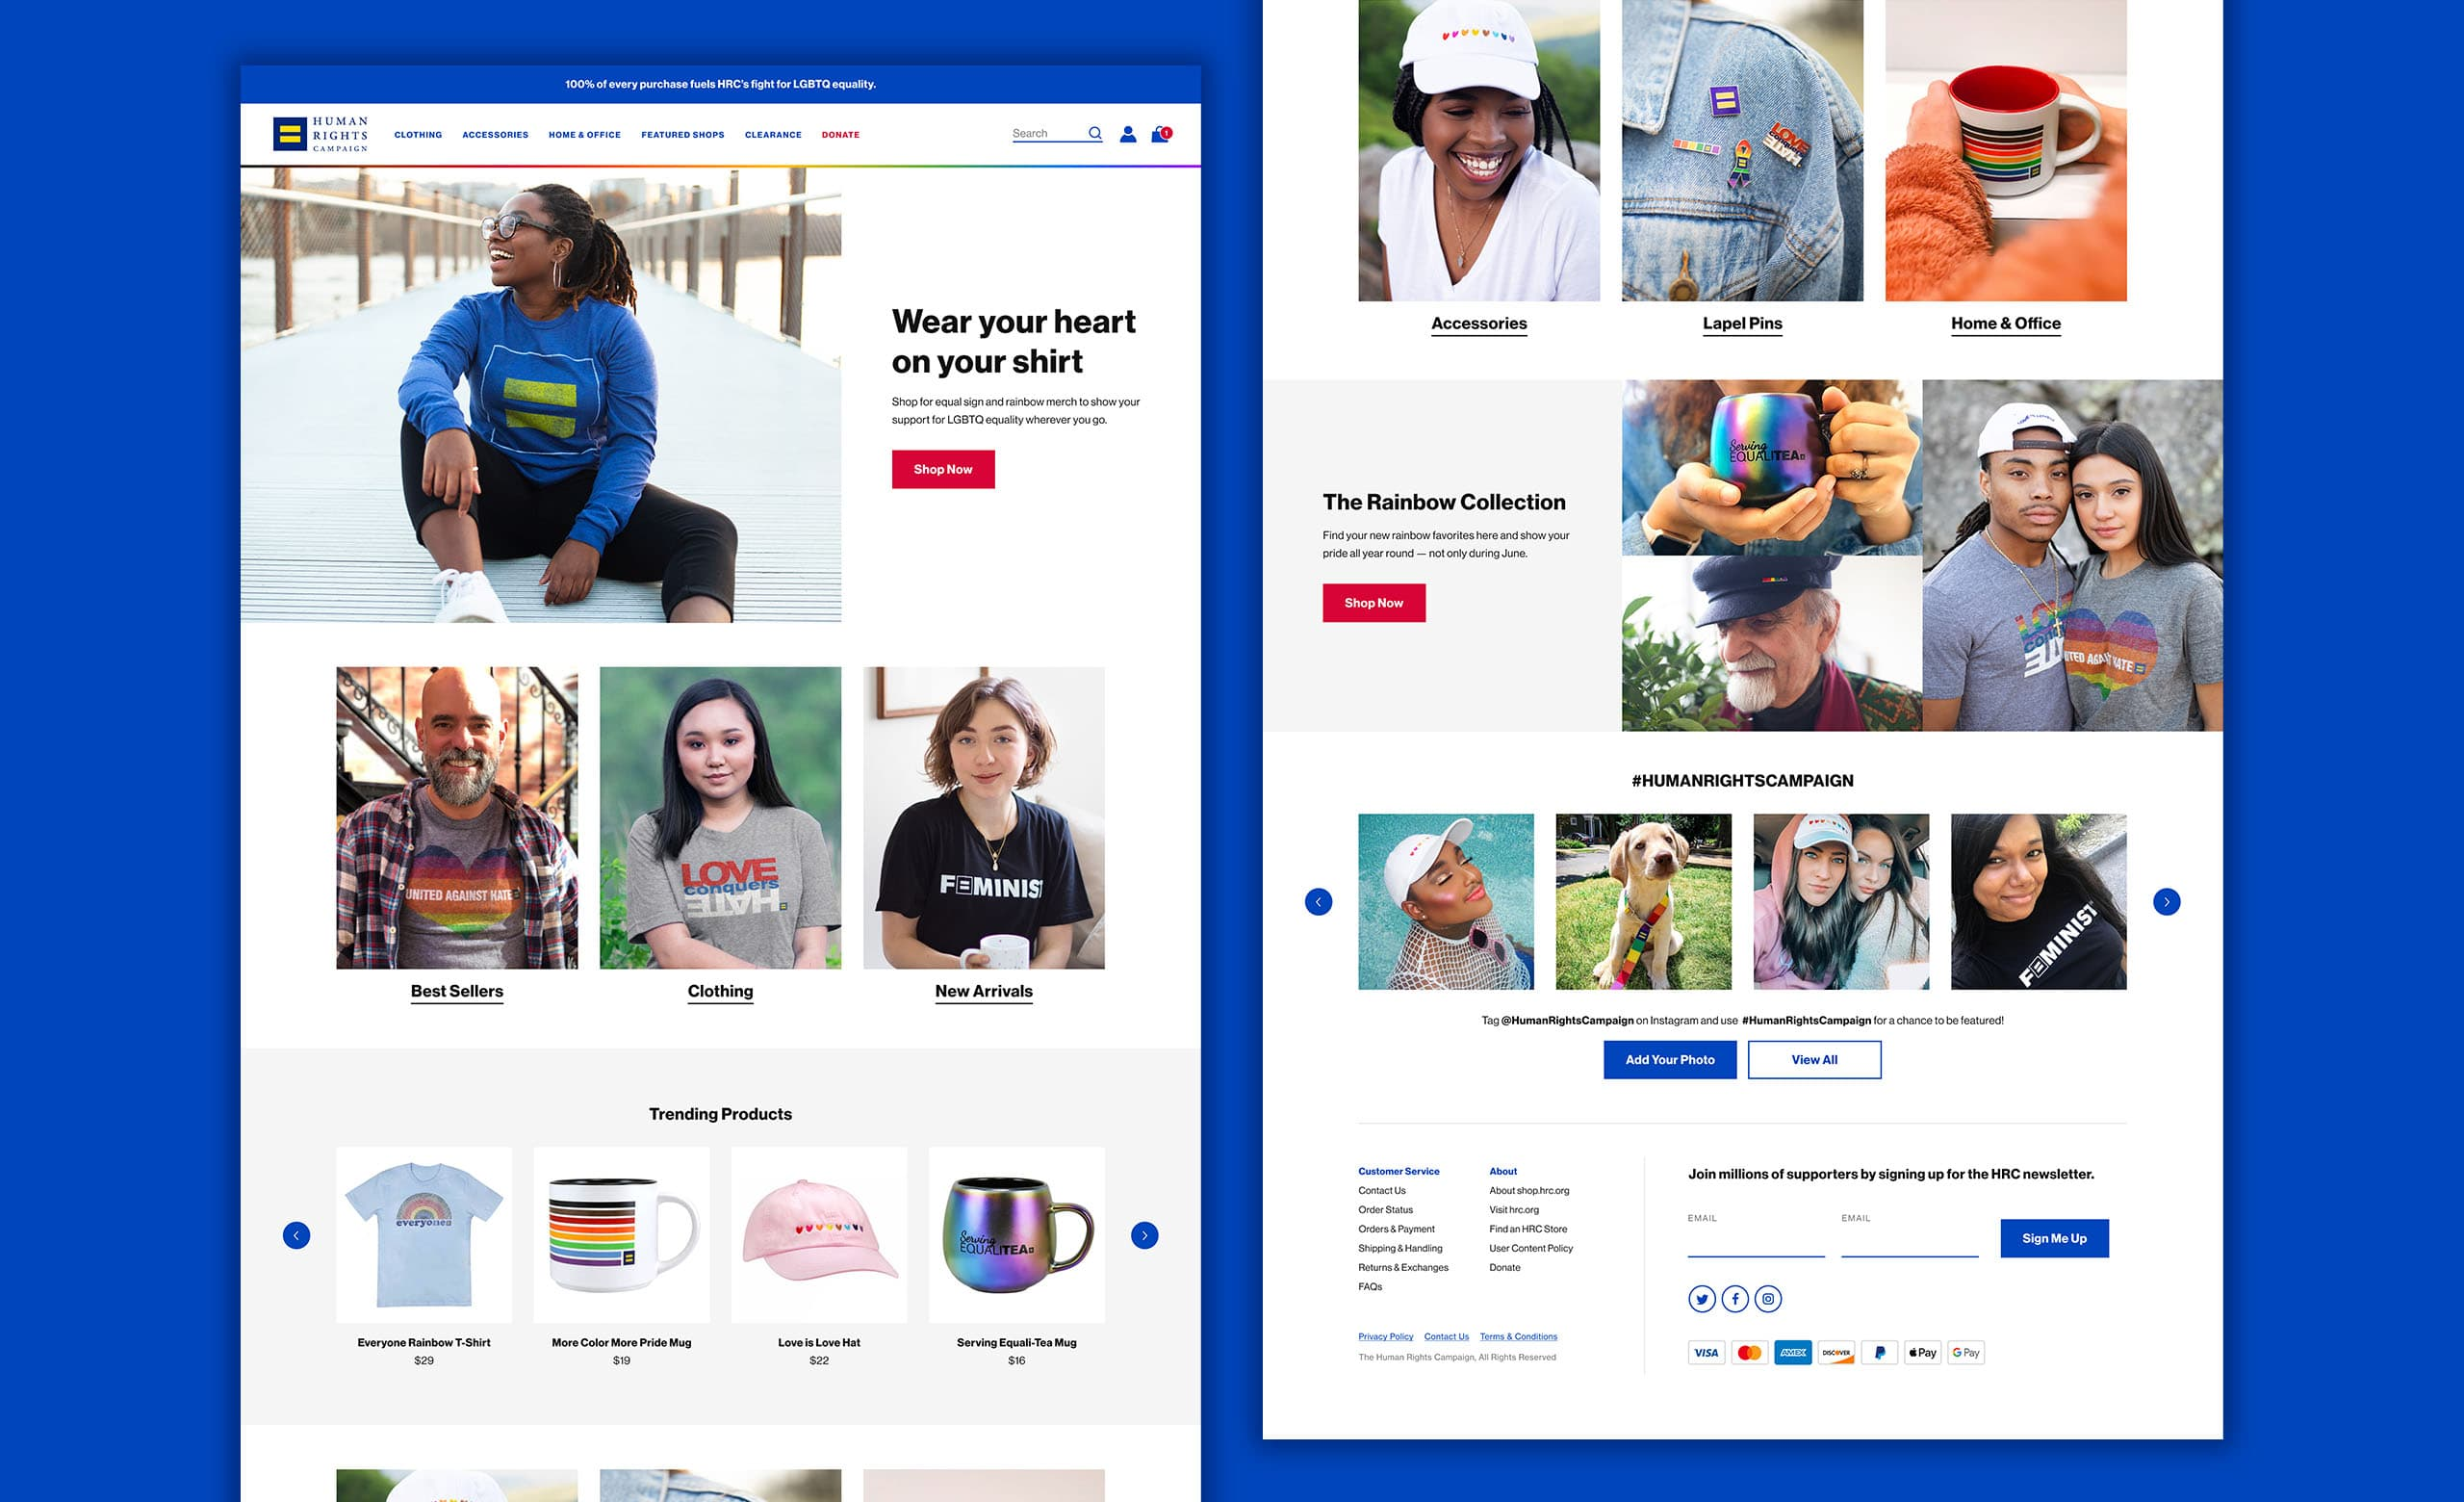 The desktop homepage of HRC's ecommerce merchandise store, showing a diverse group of people wearing HRC merchandise.